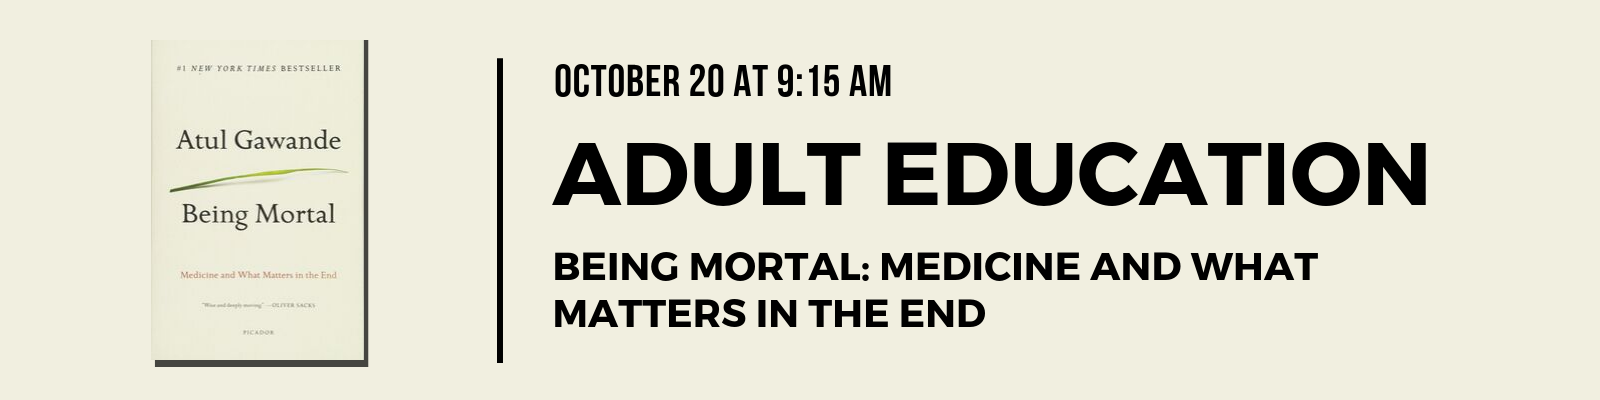 We invite all who are interested to read the book and join us on Sunday October 20 at 9:15 am in the Library as we discuss the issue raised by the book and work together to explore how we as people of faith approach issues related to death and dying.